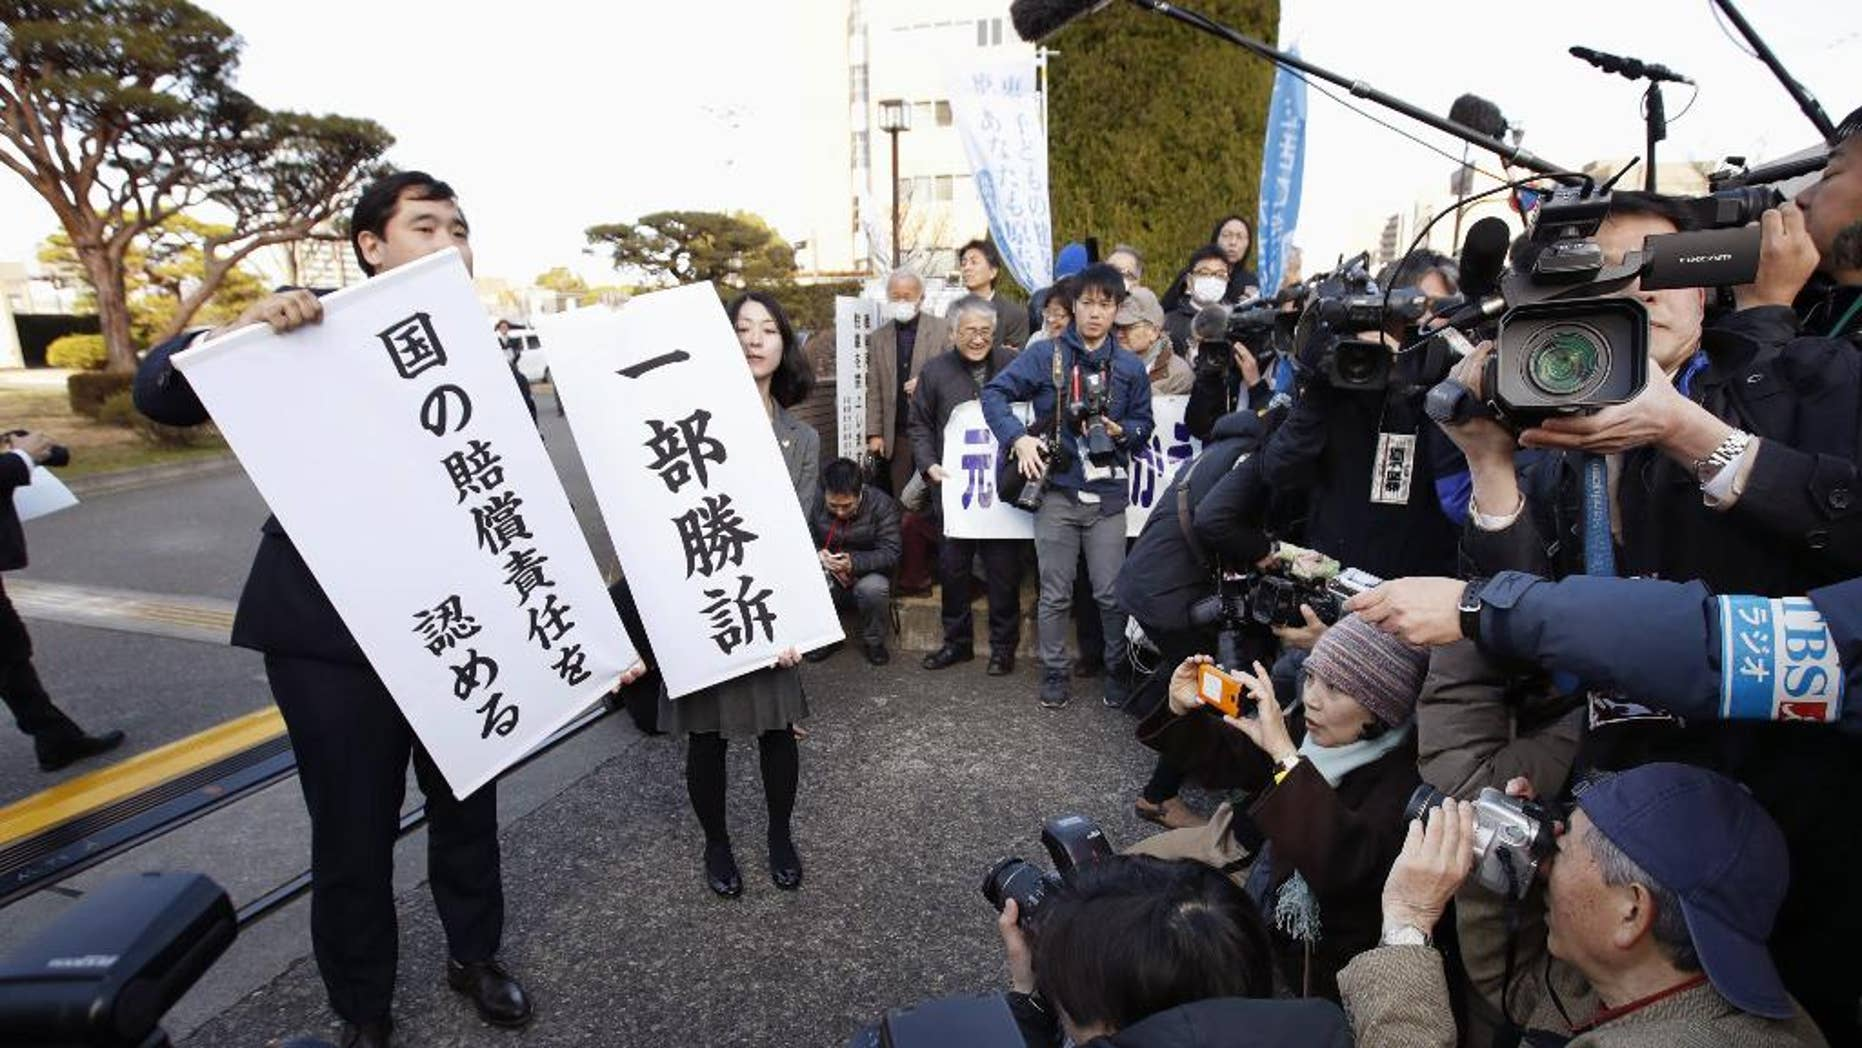 """Lawyers for a group of evacuees who were forced to leave their homes near the Fukushima nuclear plant display signs that read """"partially won a case,"""" right, and """"the government is liable"""" in front of the Maebashi District Court in Maebashi, north of Tokyo, Friday, March 17, 2017. The court Friday held Japan's government and a utility liable for neglecting tsunami safety measures at the Fukushima nuclear plant and ordered them to pay 62 of the thousands of people who fled radiation released during the March 2011 disaster. (Fumine Tsutabayashi/Kyodo News via AP)"""